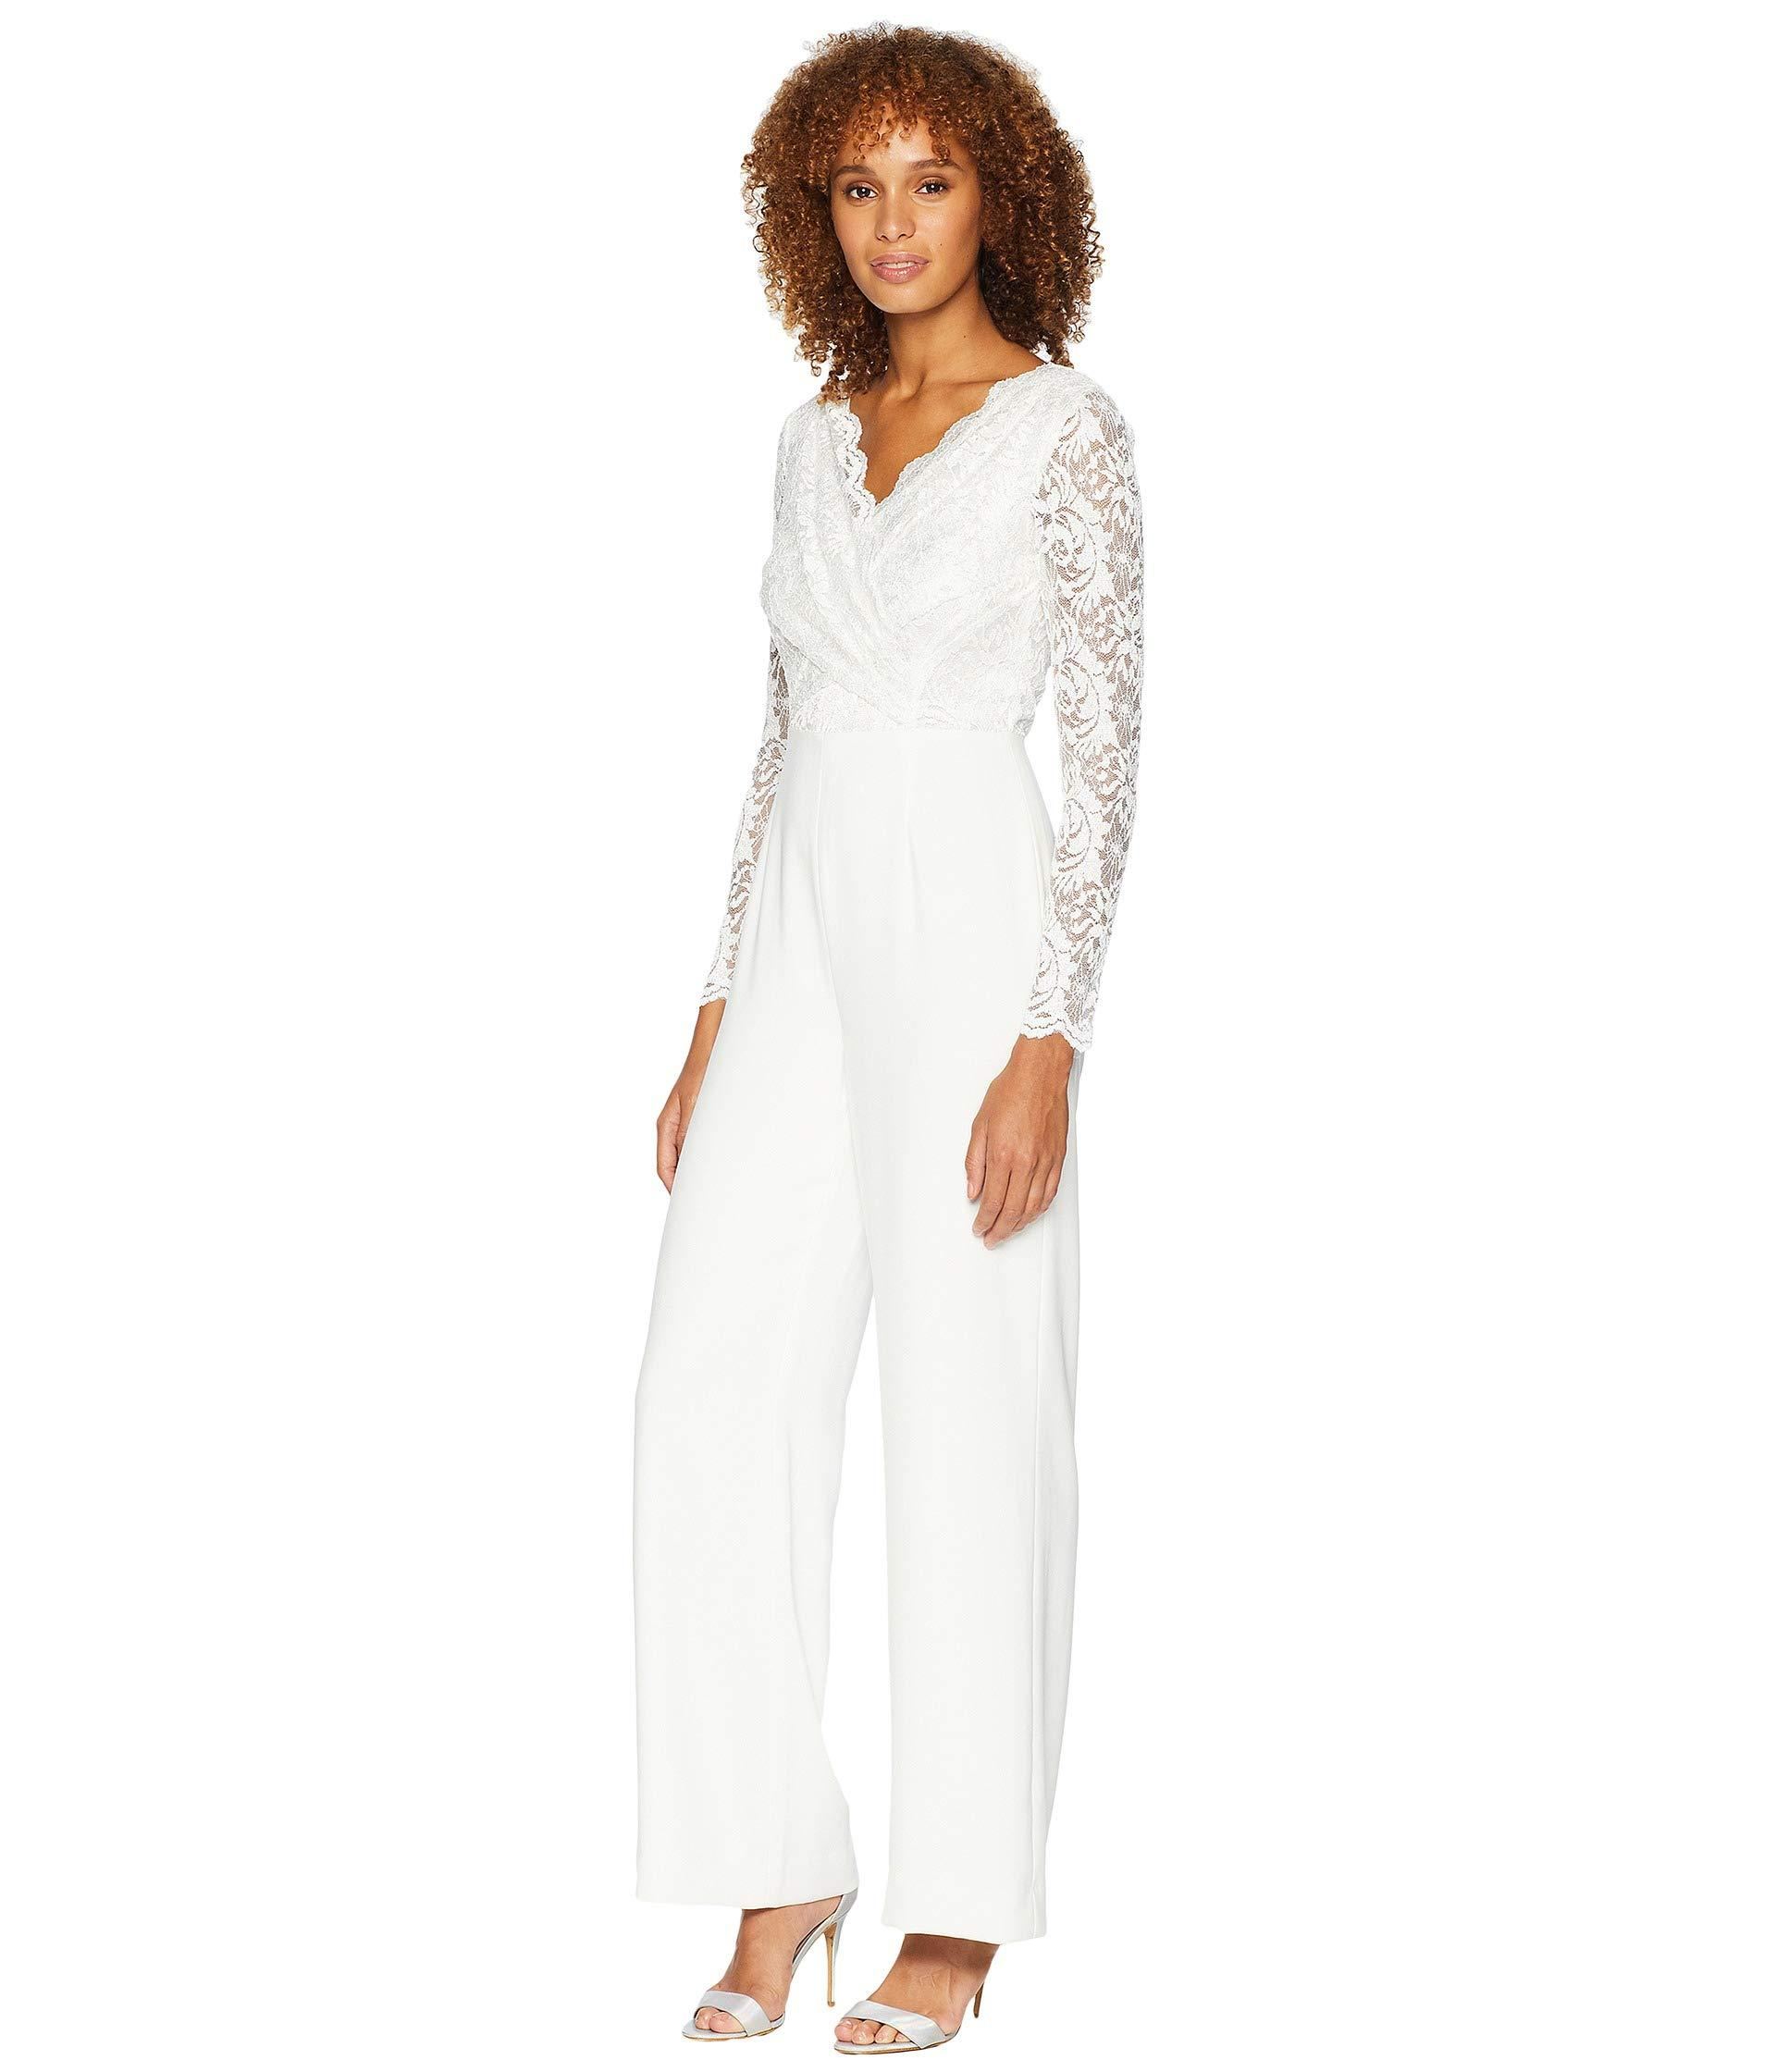 0b8550d7974 Lyst - Tahari Long Sleeve Crepe sequin Lace Jumpsuit With V-neckline in  White - Save 38%